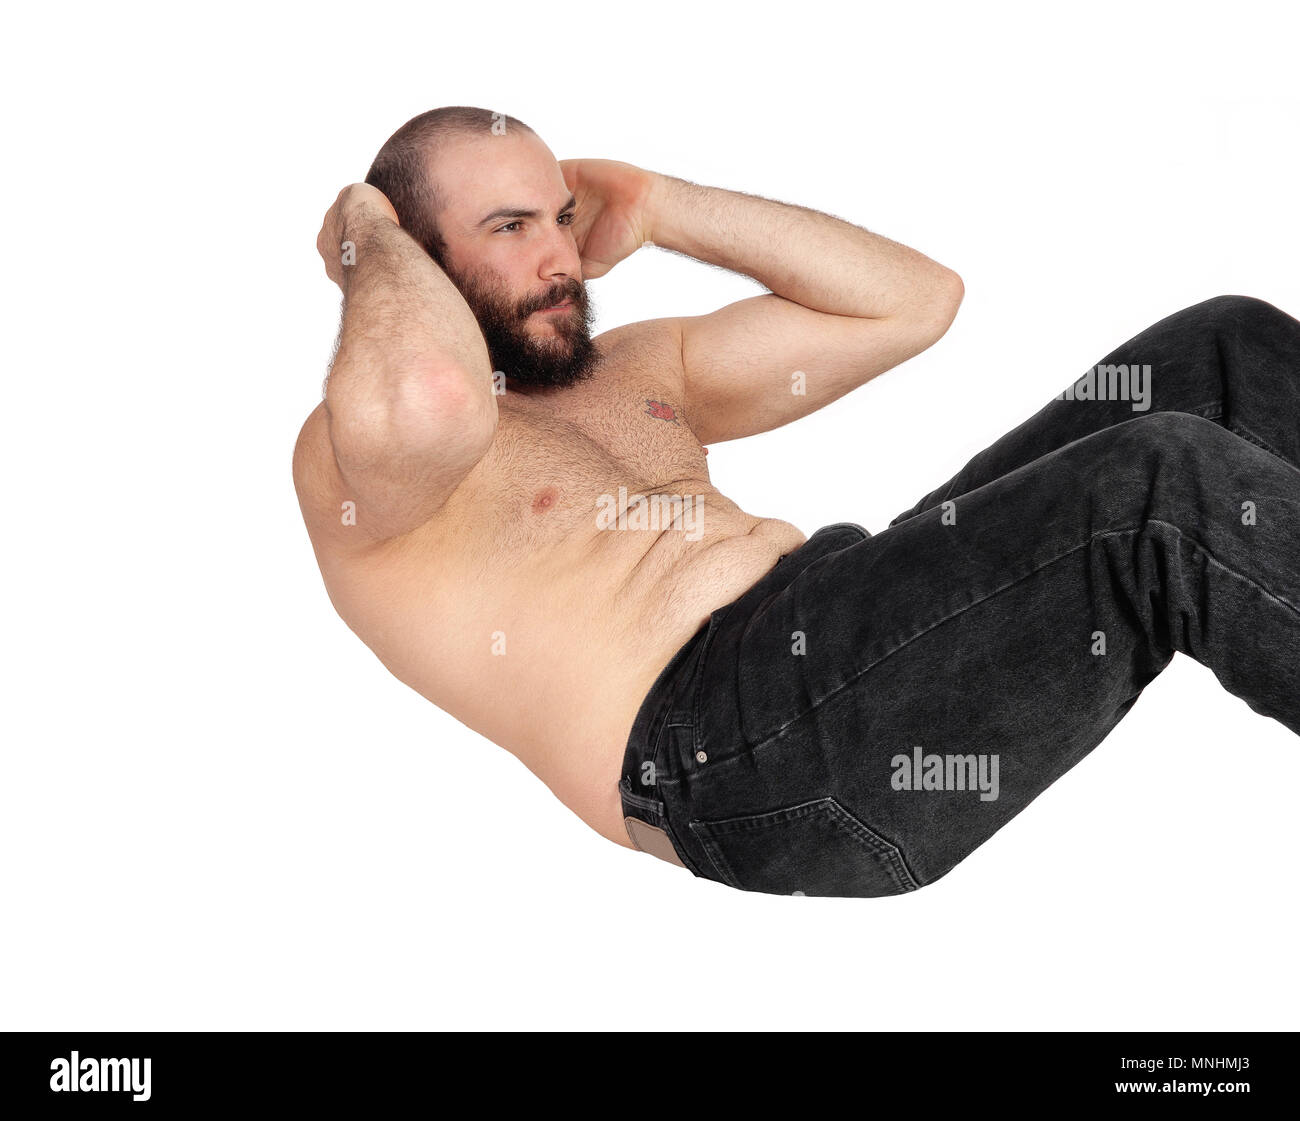 A Slim Handsome Man Without A Shirt And In Jeans Doing Stomach